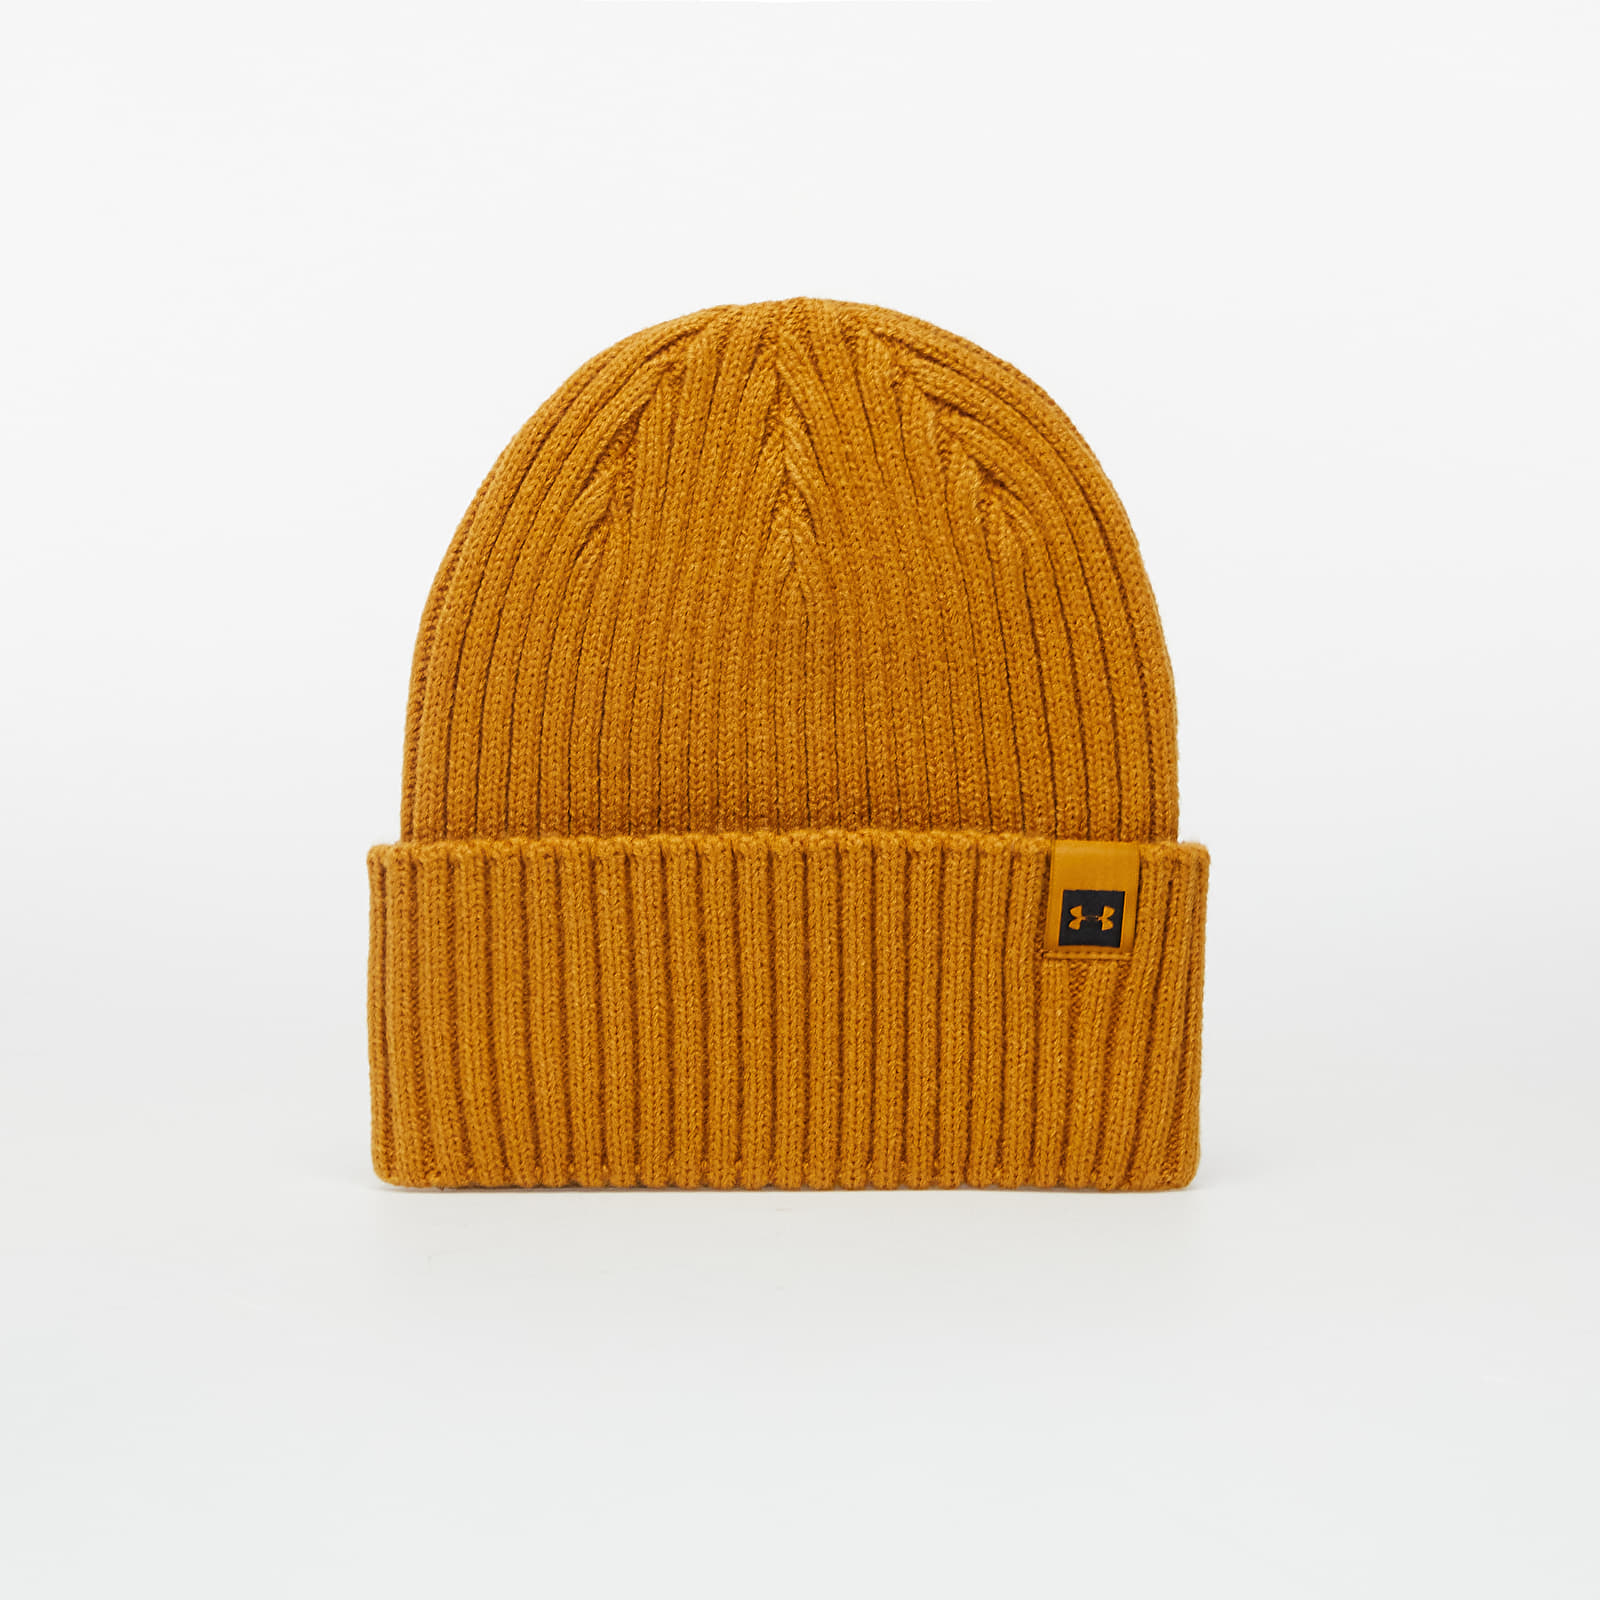 Caps and Hats Under Armour Truckstop Pro Beanie Yellow Ochre/ Black